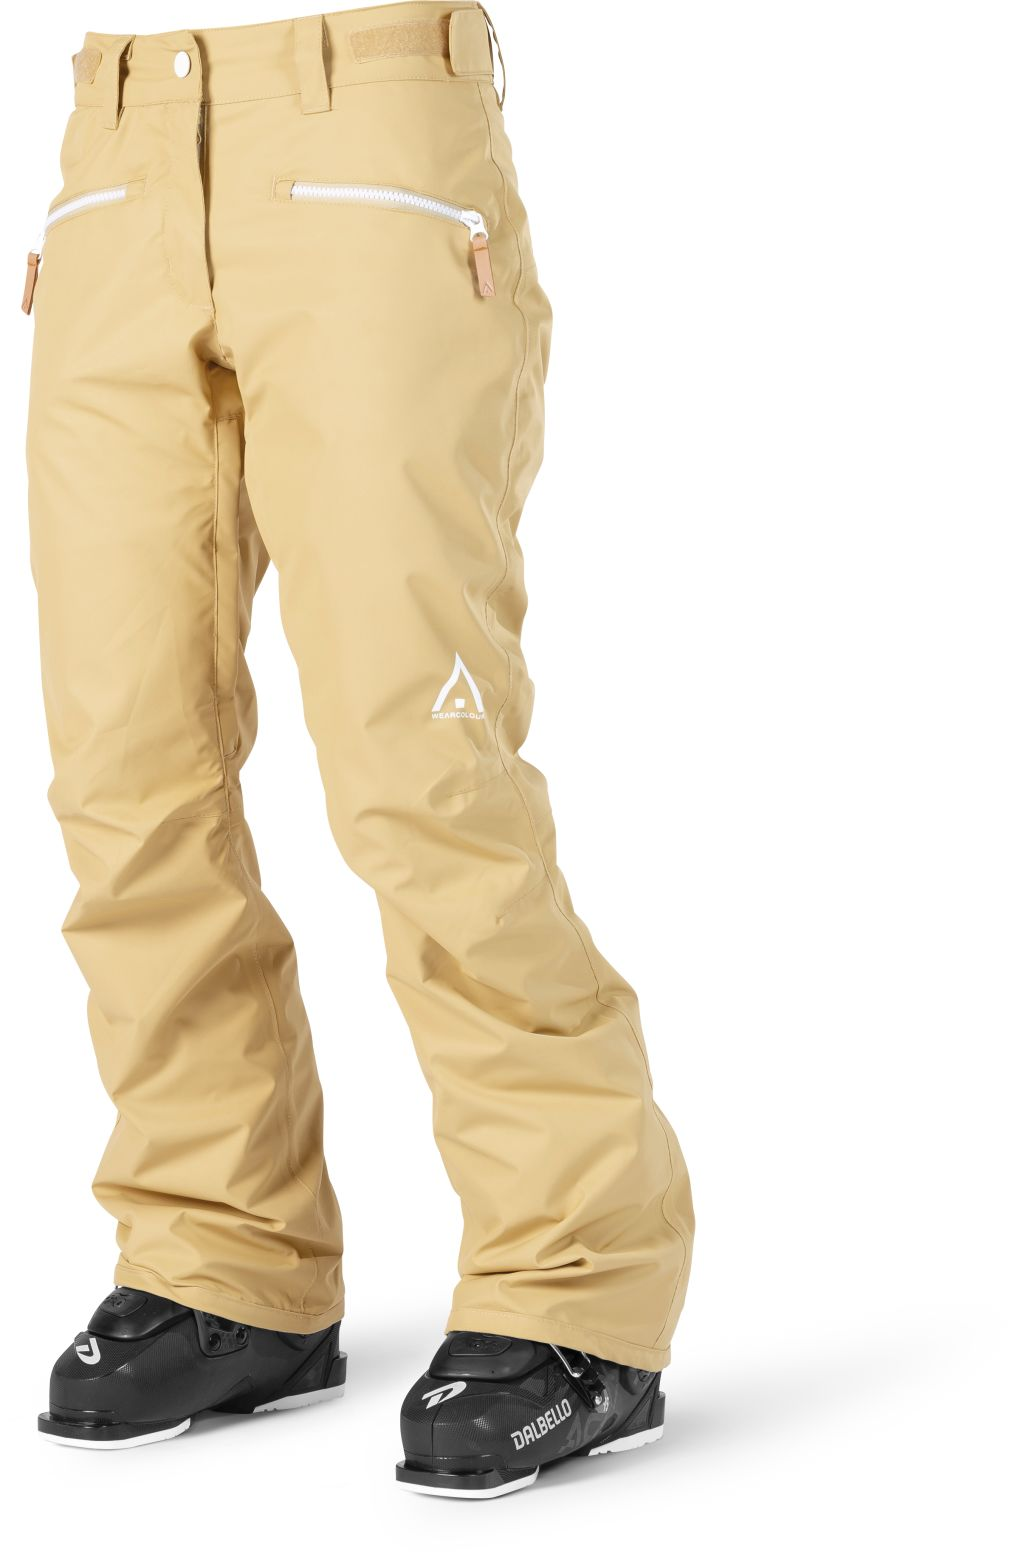 Wear Colour Cork Pant W